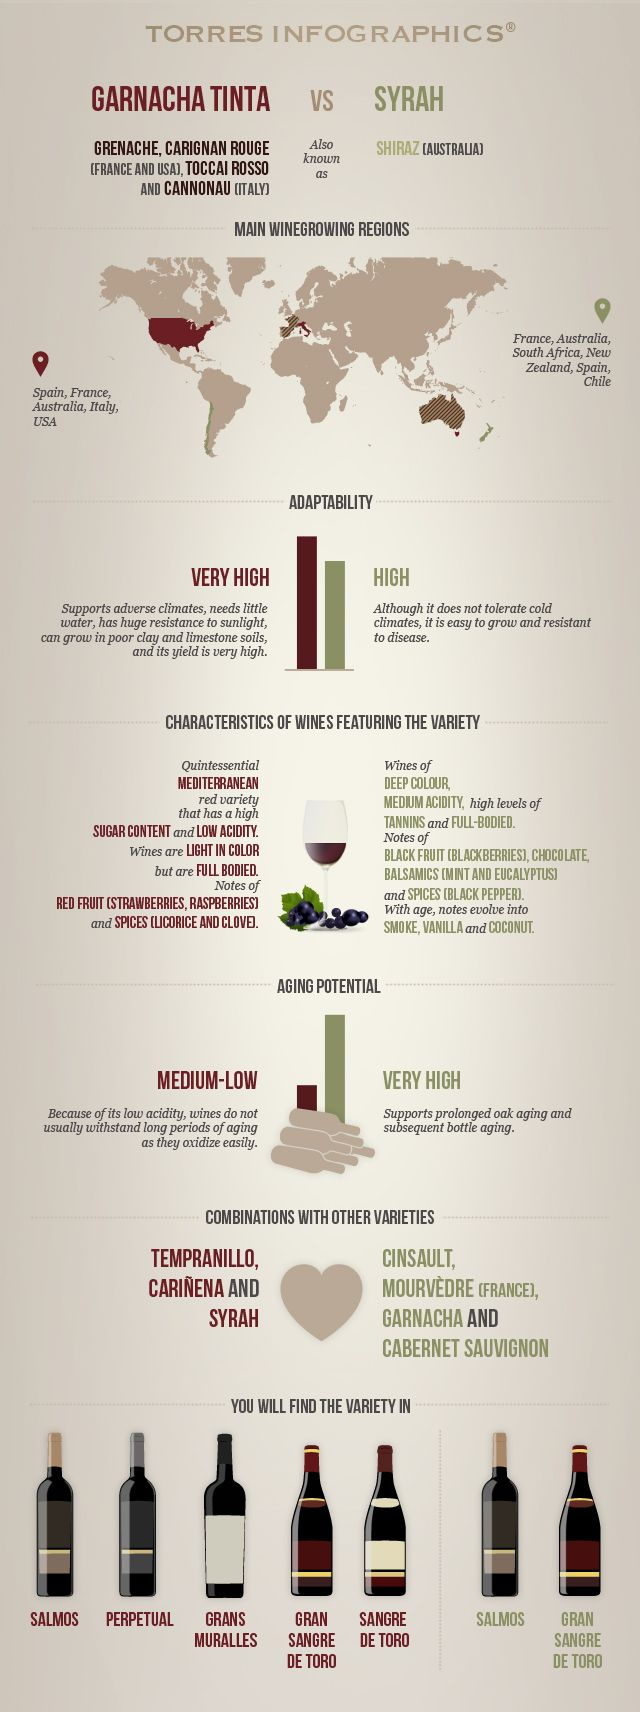 Garnacha Tinta vs. Syrah: Infographic by 'Club Torres' #wine101 #infographic